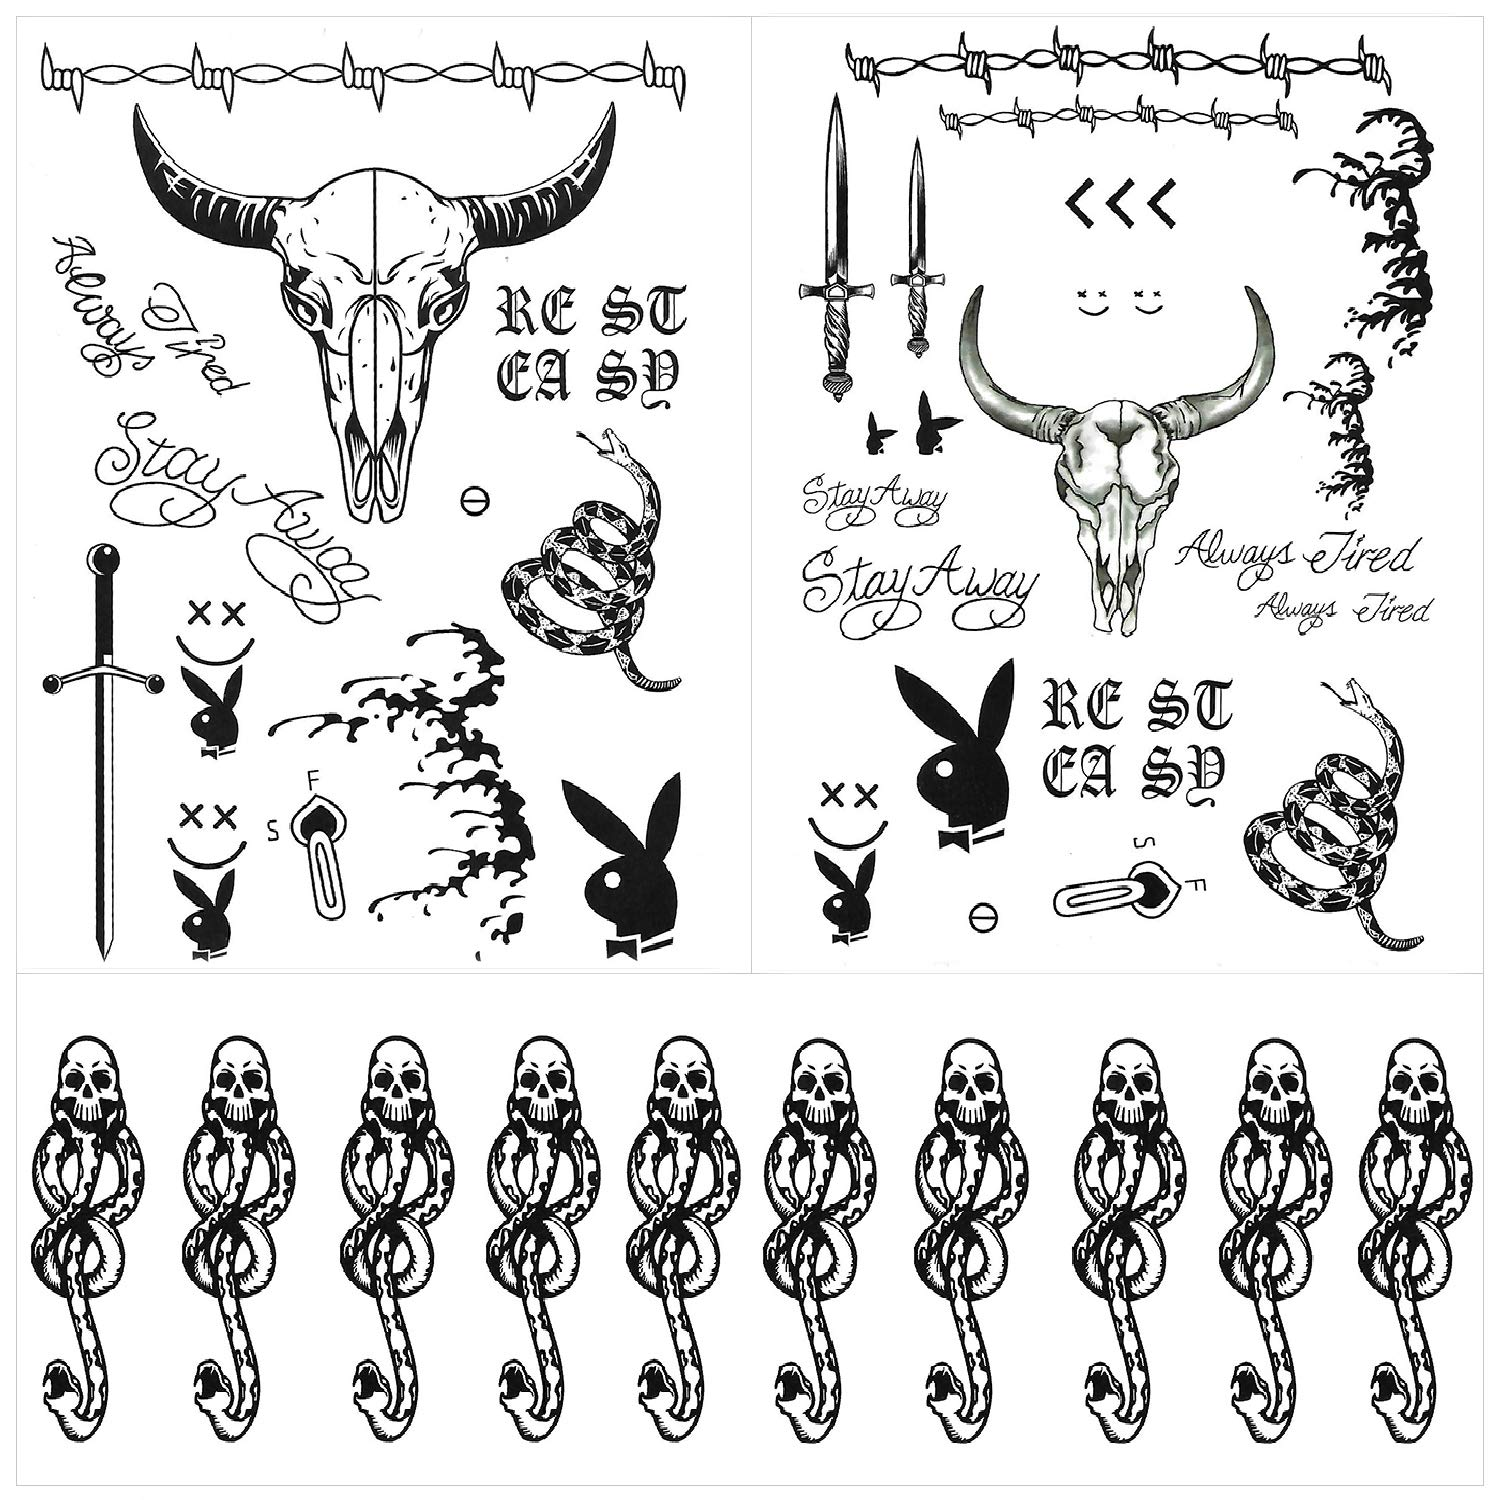 12 Sheets Post Malone Face Tattoos Set, Post Malone Tattoos, Halloween Costume Accessories and Parties for Women and Men, Included 10 Sheets Death Eaters Dark Mark Temporary Tattoos